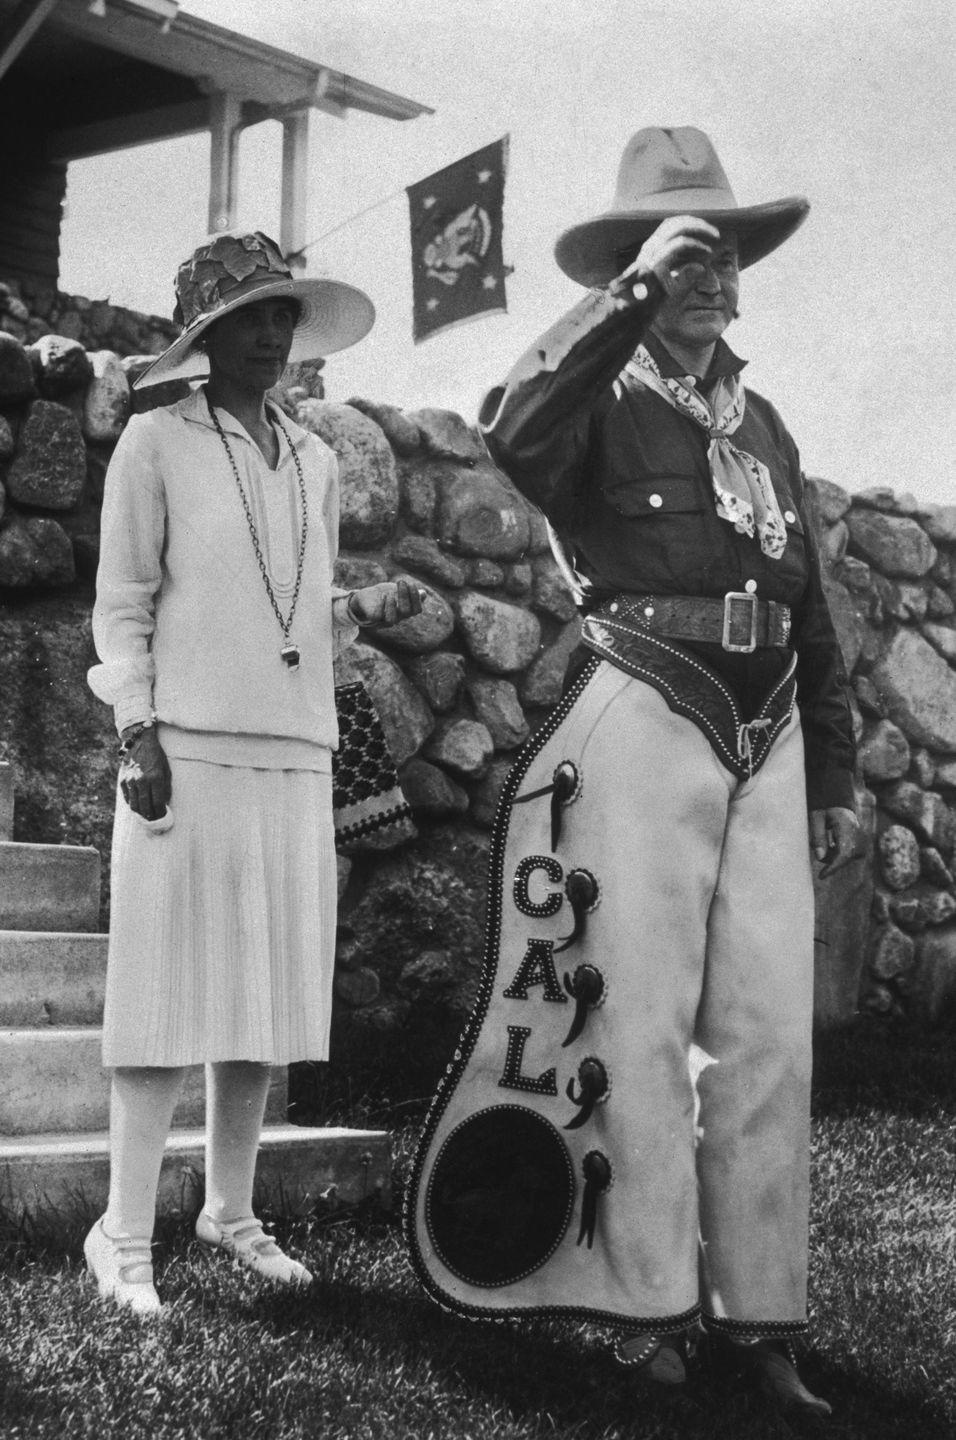 <p>Calvin Coolidge dons a cowboy outfit—complete with personalized chaps—for a 4th of July celebration in 1927.</p>